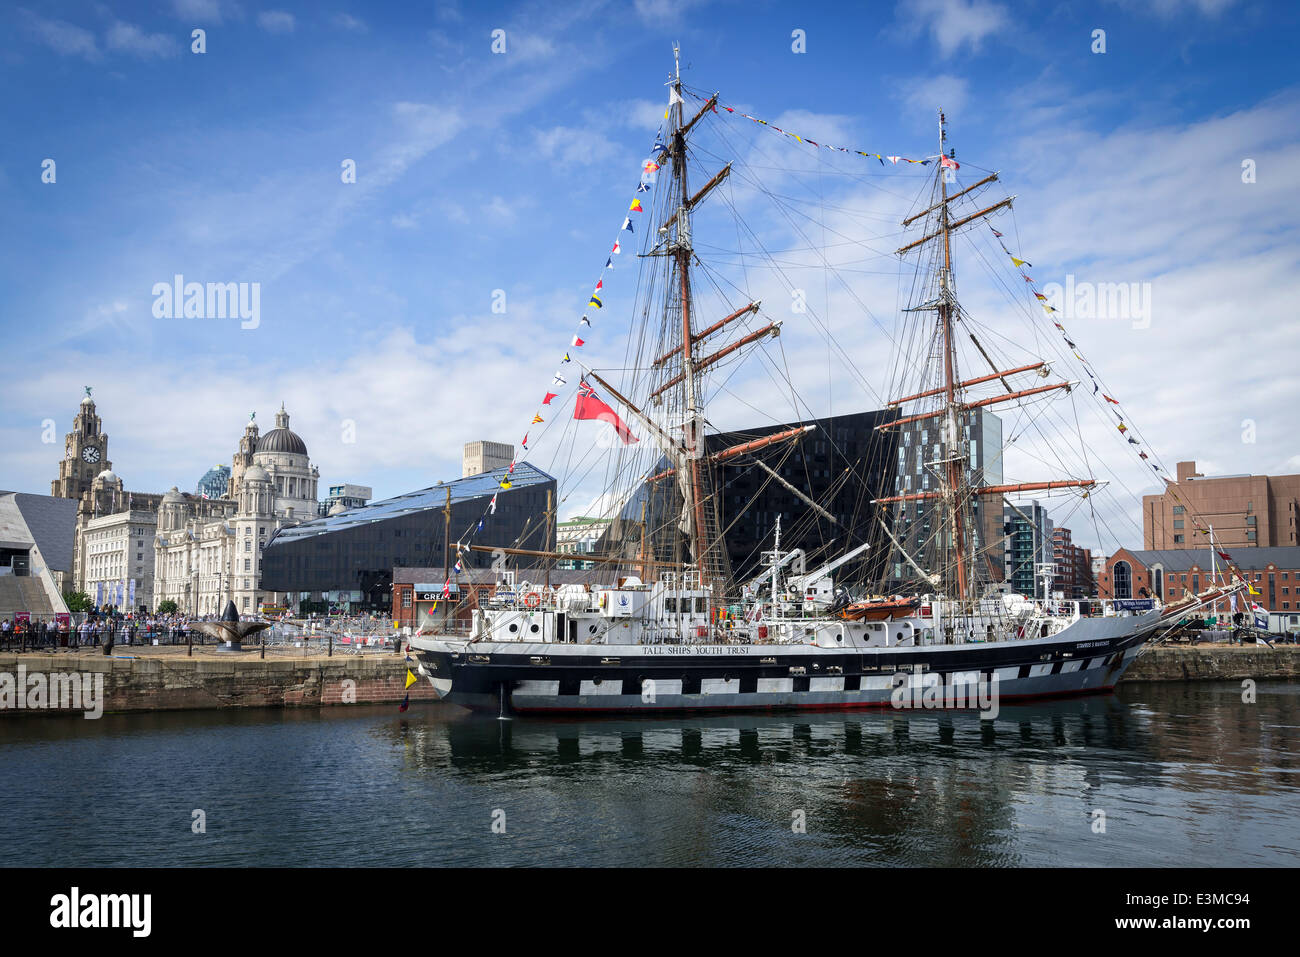 The Stavros S Niarchos tall ship berthed in Liverpool's Canning Dock at the pierhead. - Stock Image